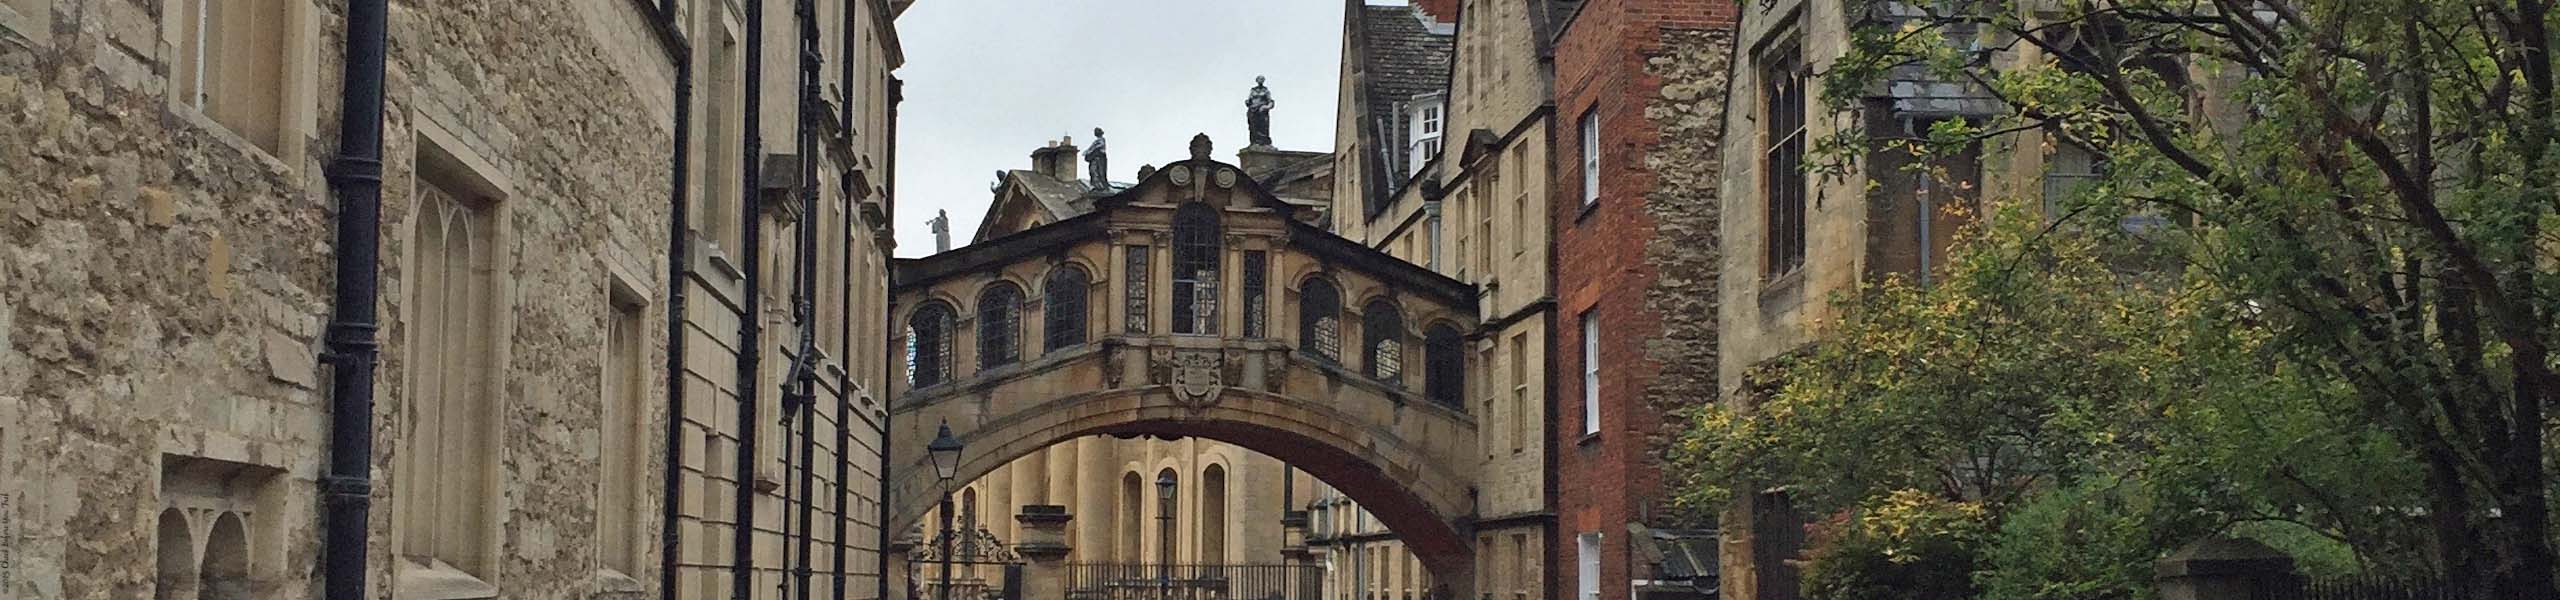 Bridge of Sighs at Hertford College - Oxford, England